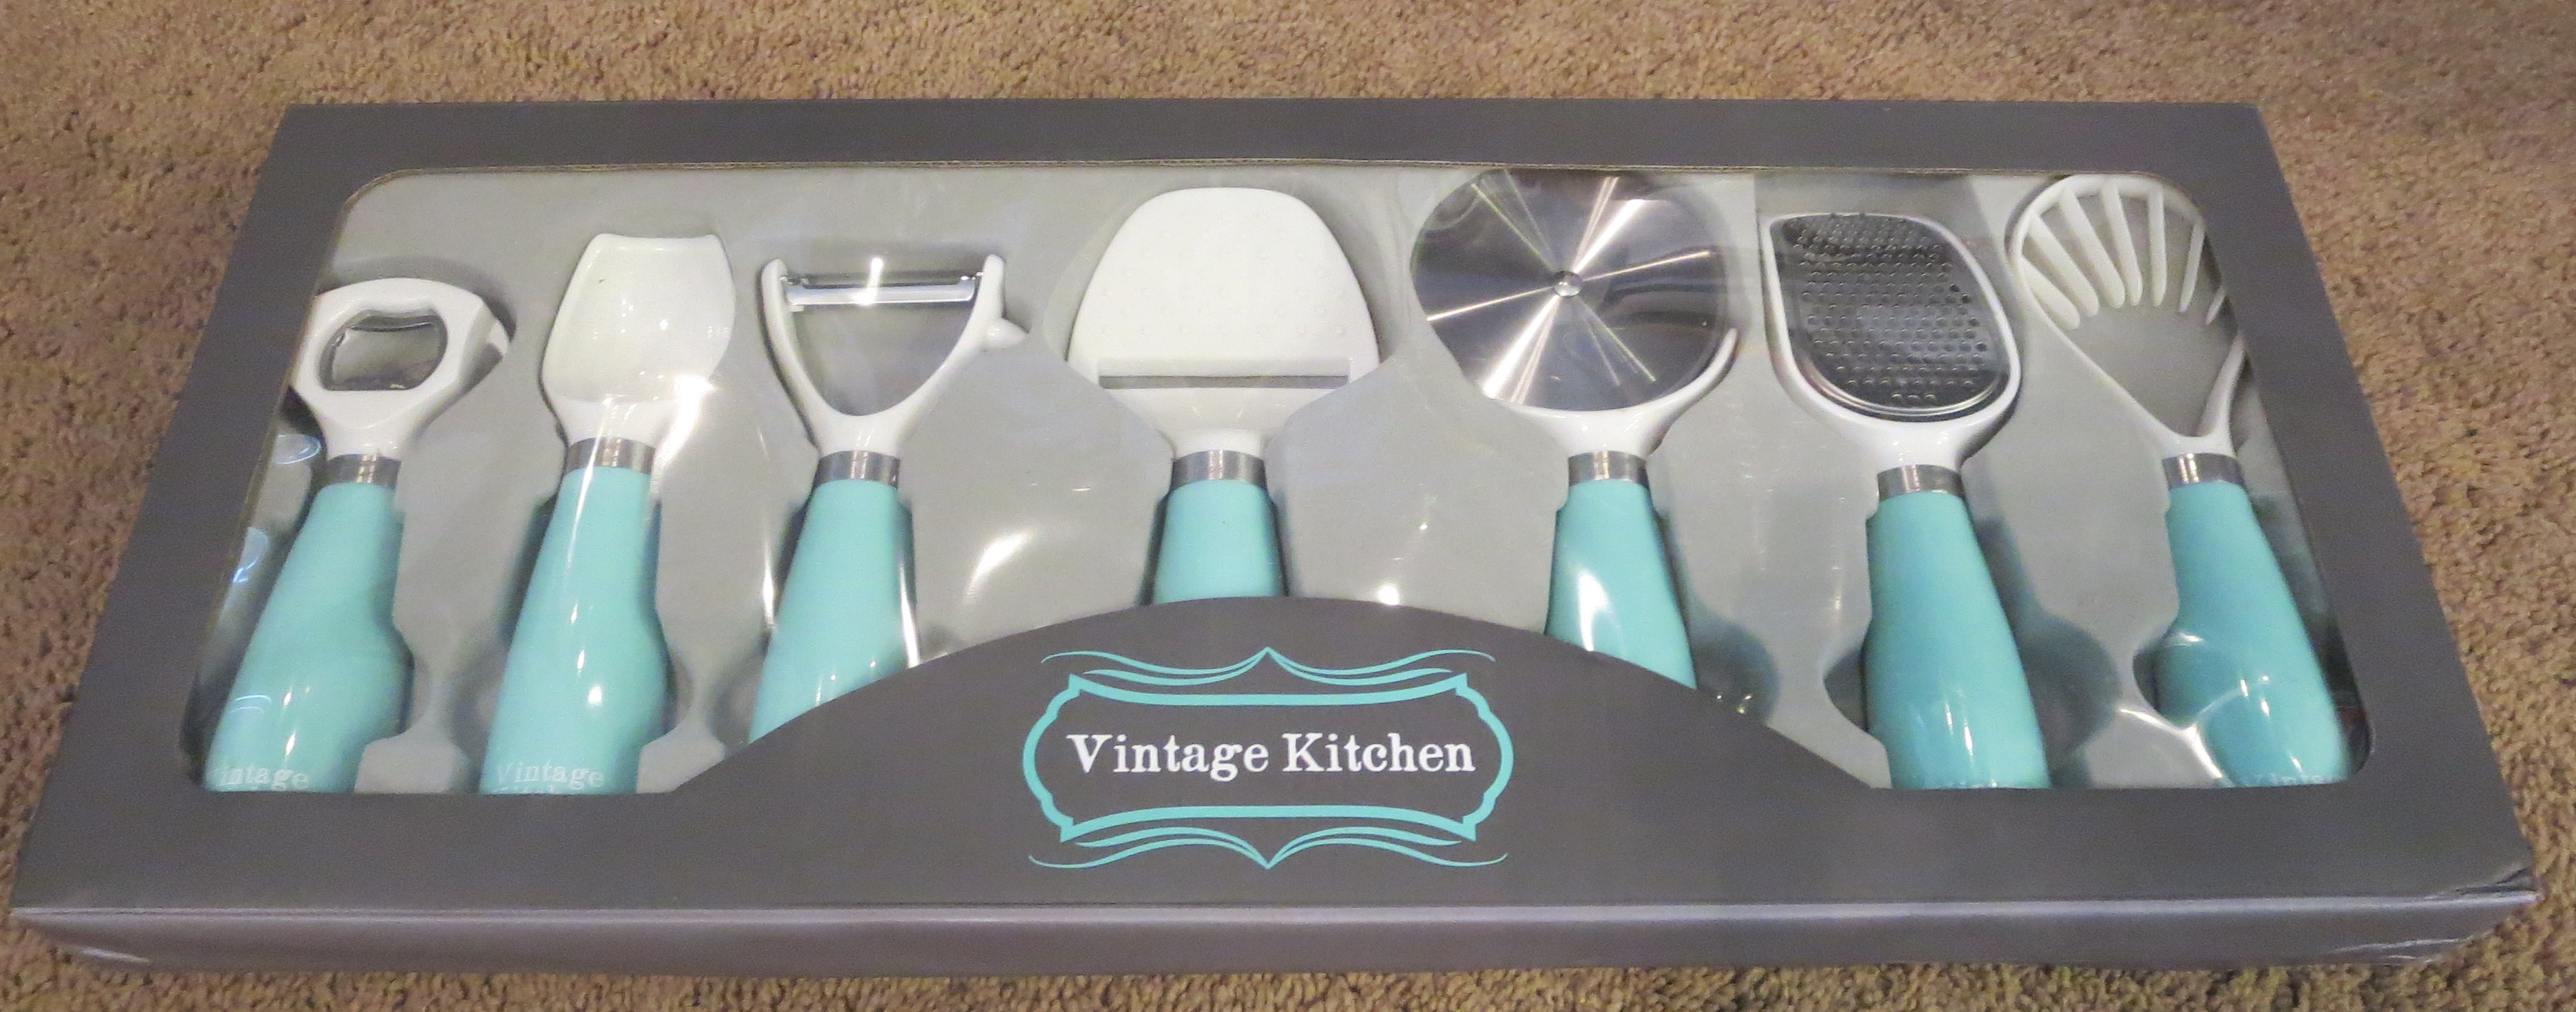 Vintage Kitchen 7-piece Kitchen Gadget Utensil Tool Set Review |